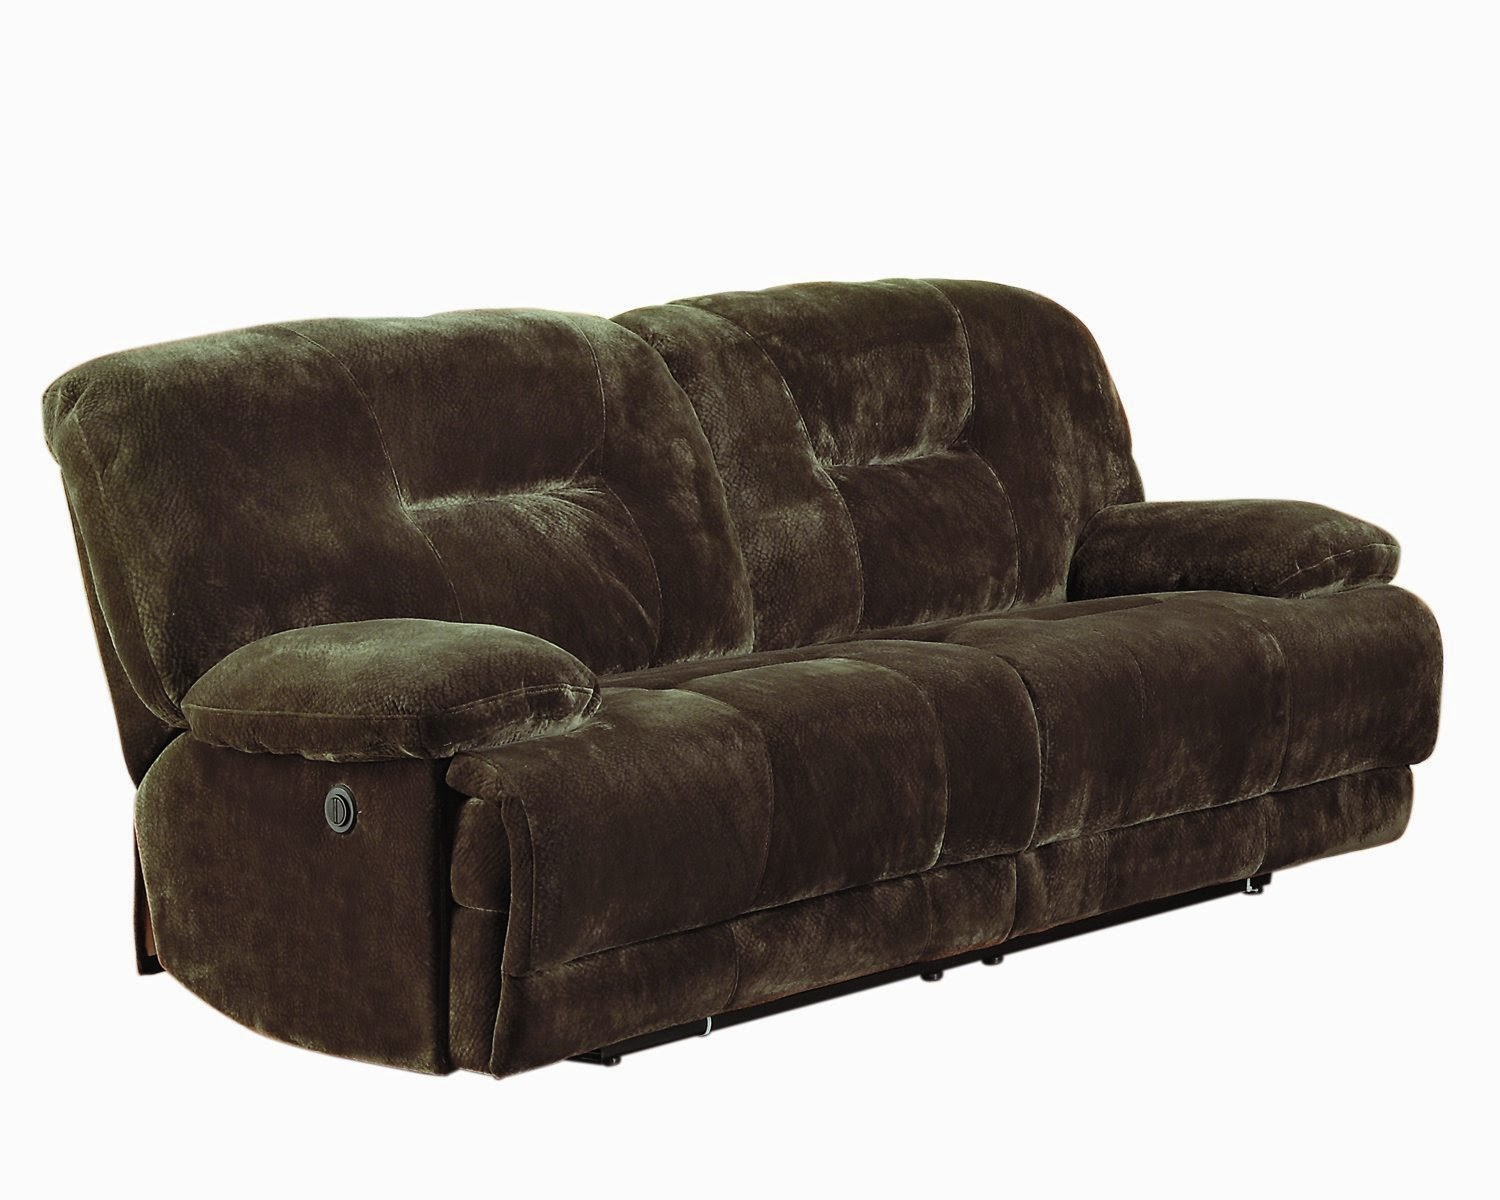 The Best Reclining Sofas Ratings Reviews 2 Seater Leather Recliner